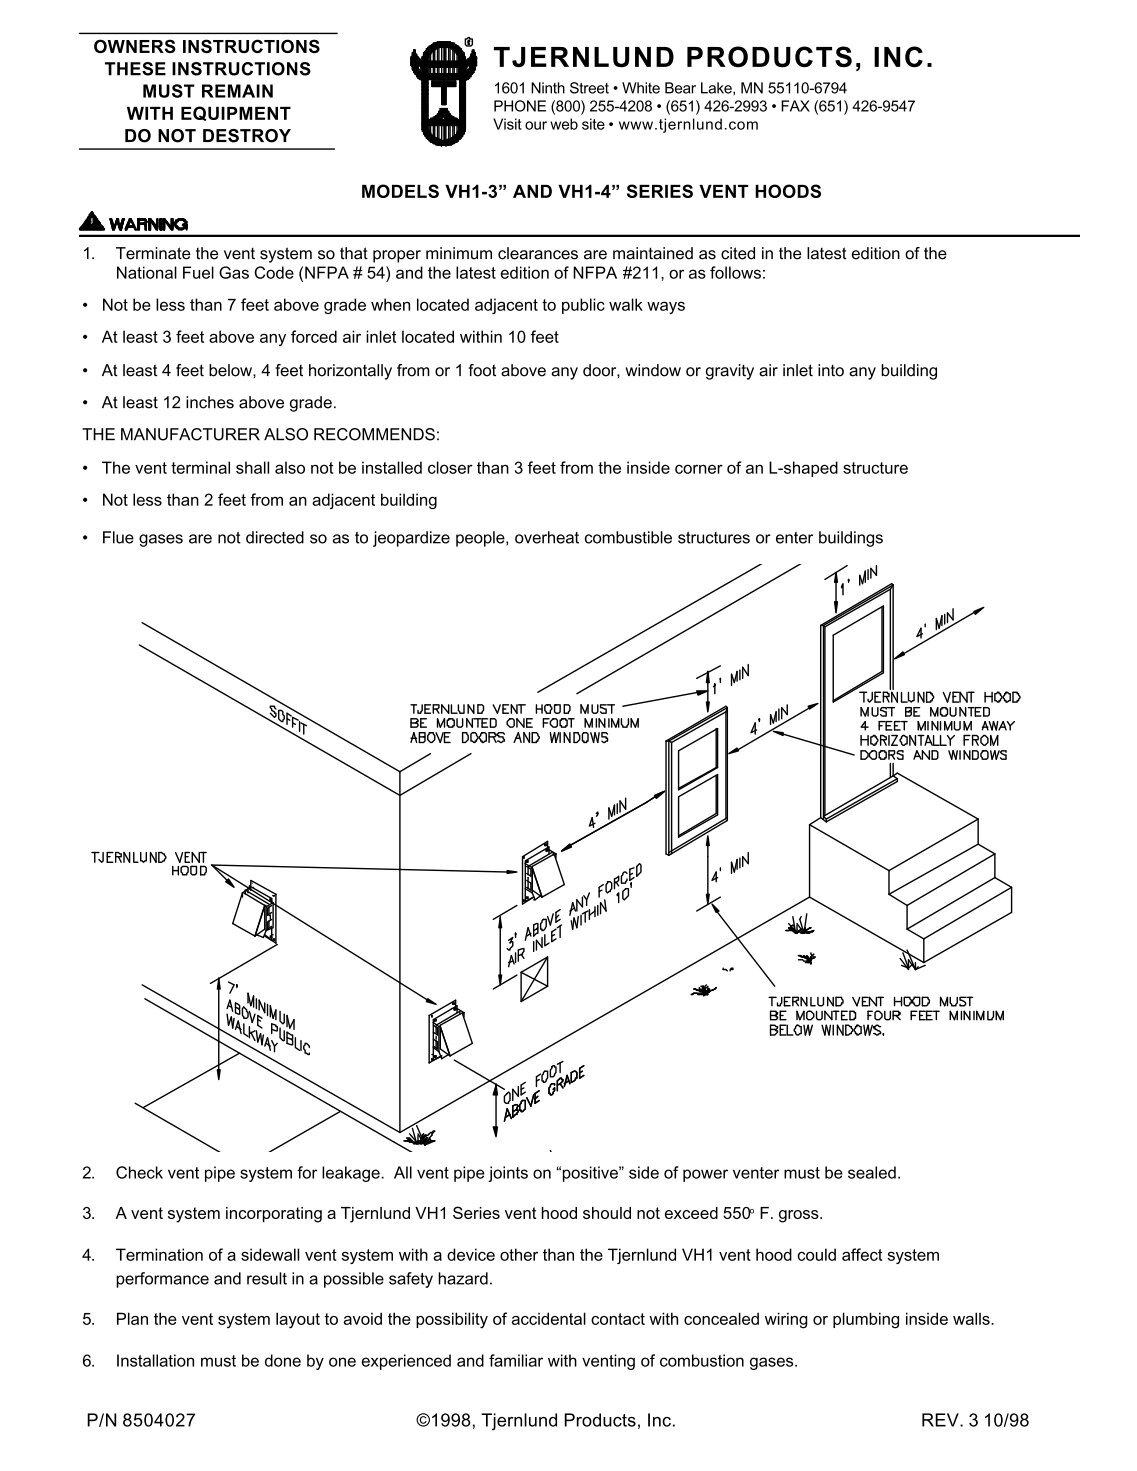 Wiring Diagrams Mercedes Vito Product Hornby Point Motor Tjernlund Vh1 4 Vent Hood Products